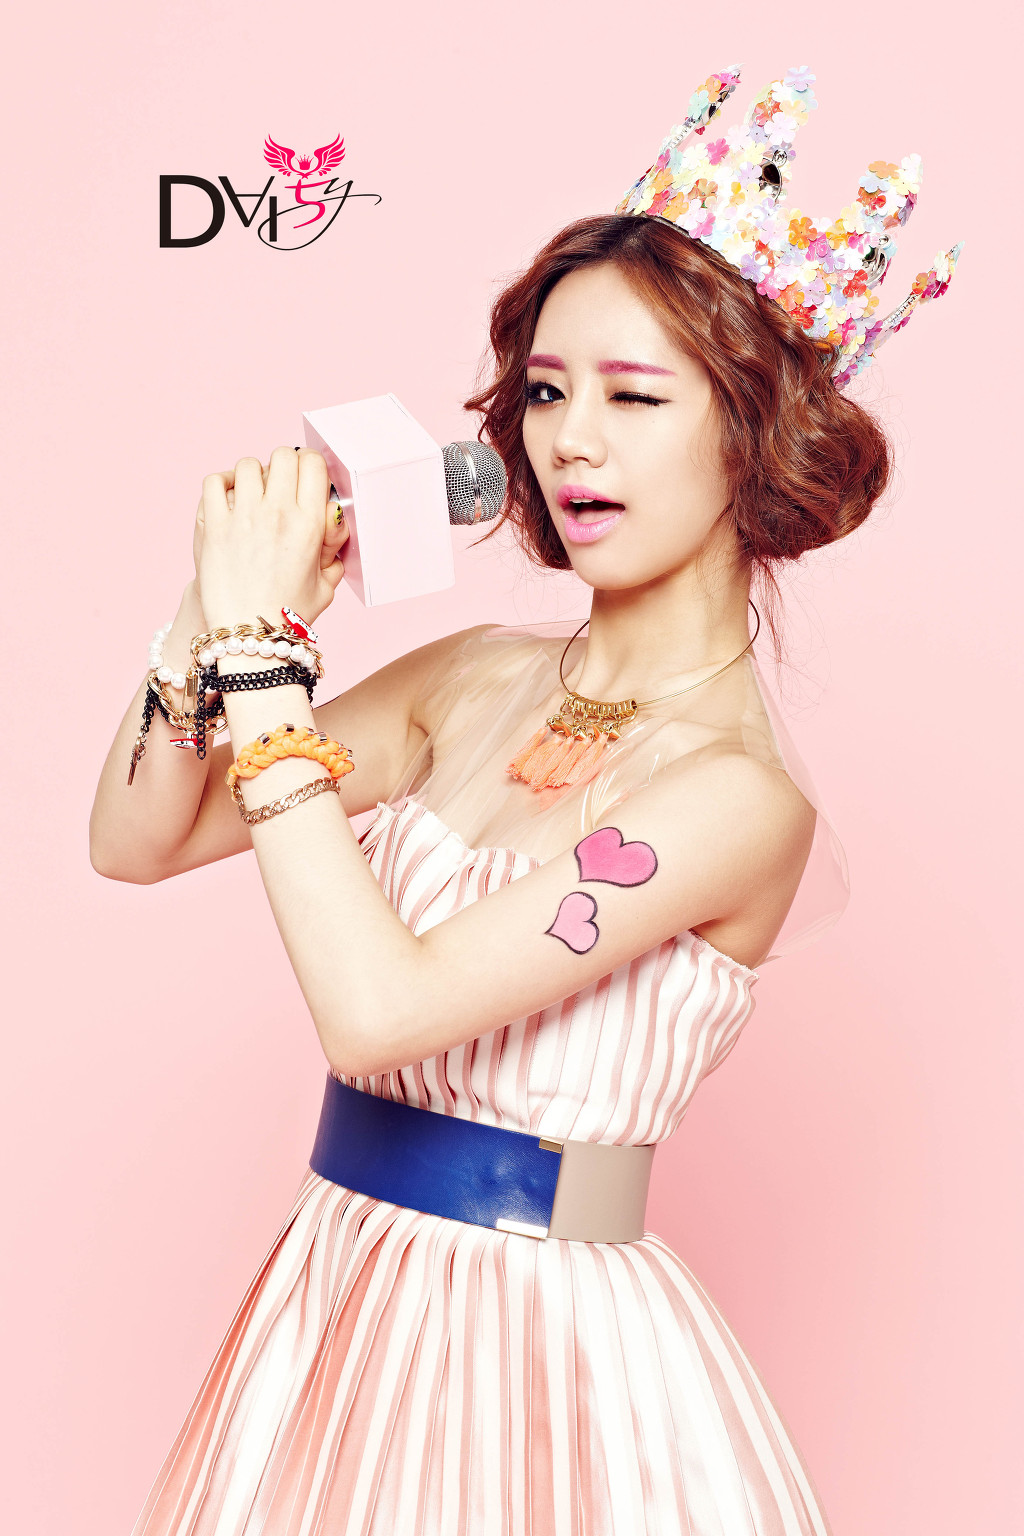 Girls Day Girl 39 S Day Photo 35155847 Fanpop